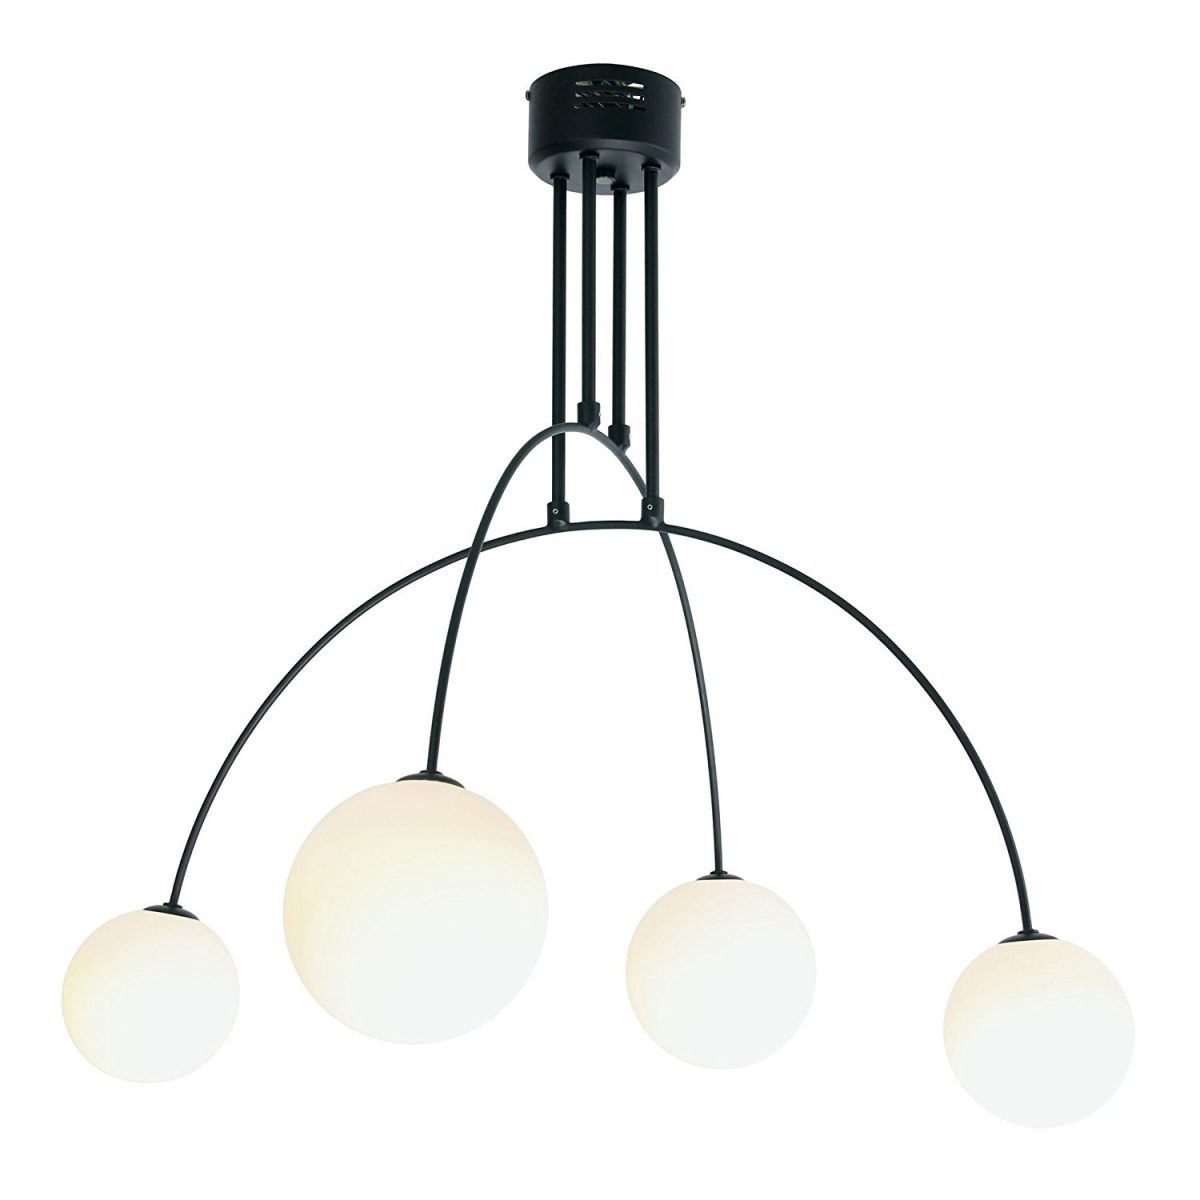 Debenhams Lighting - My Top 10